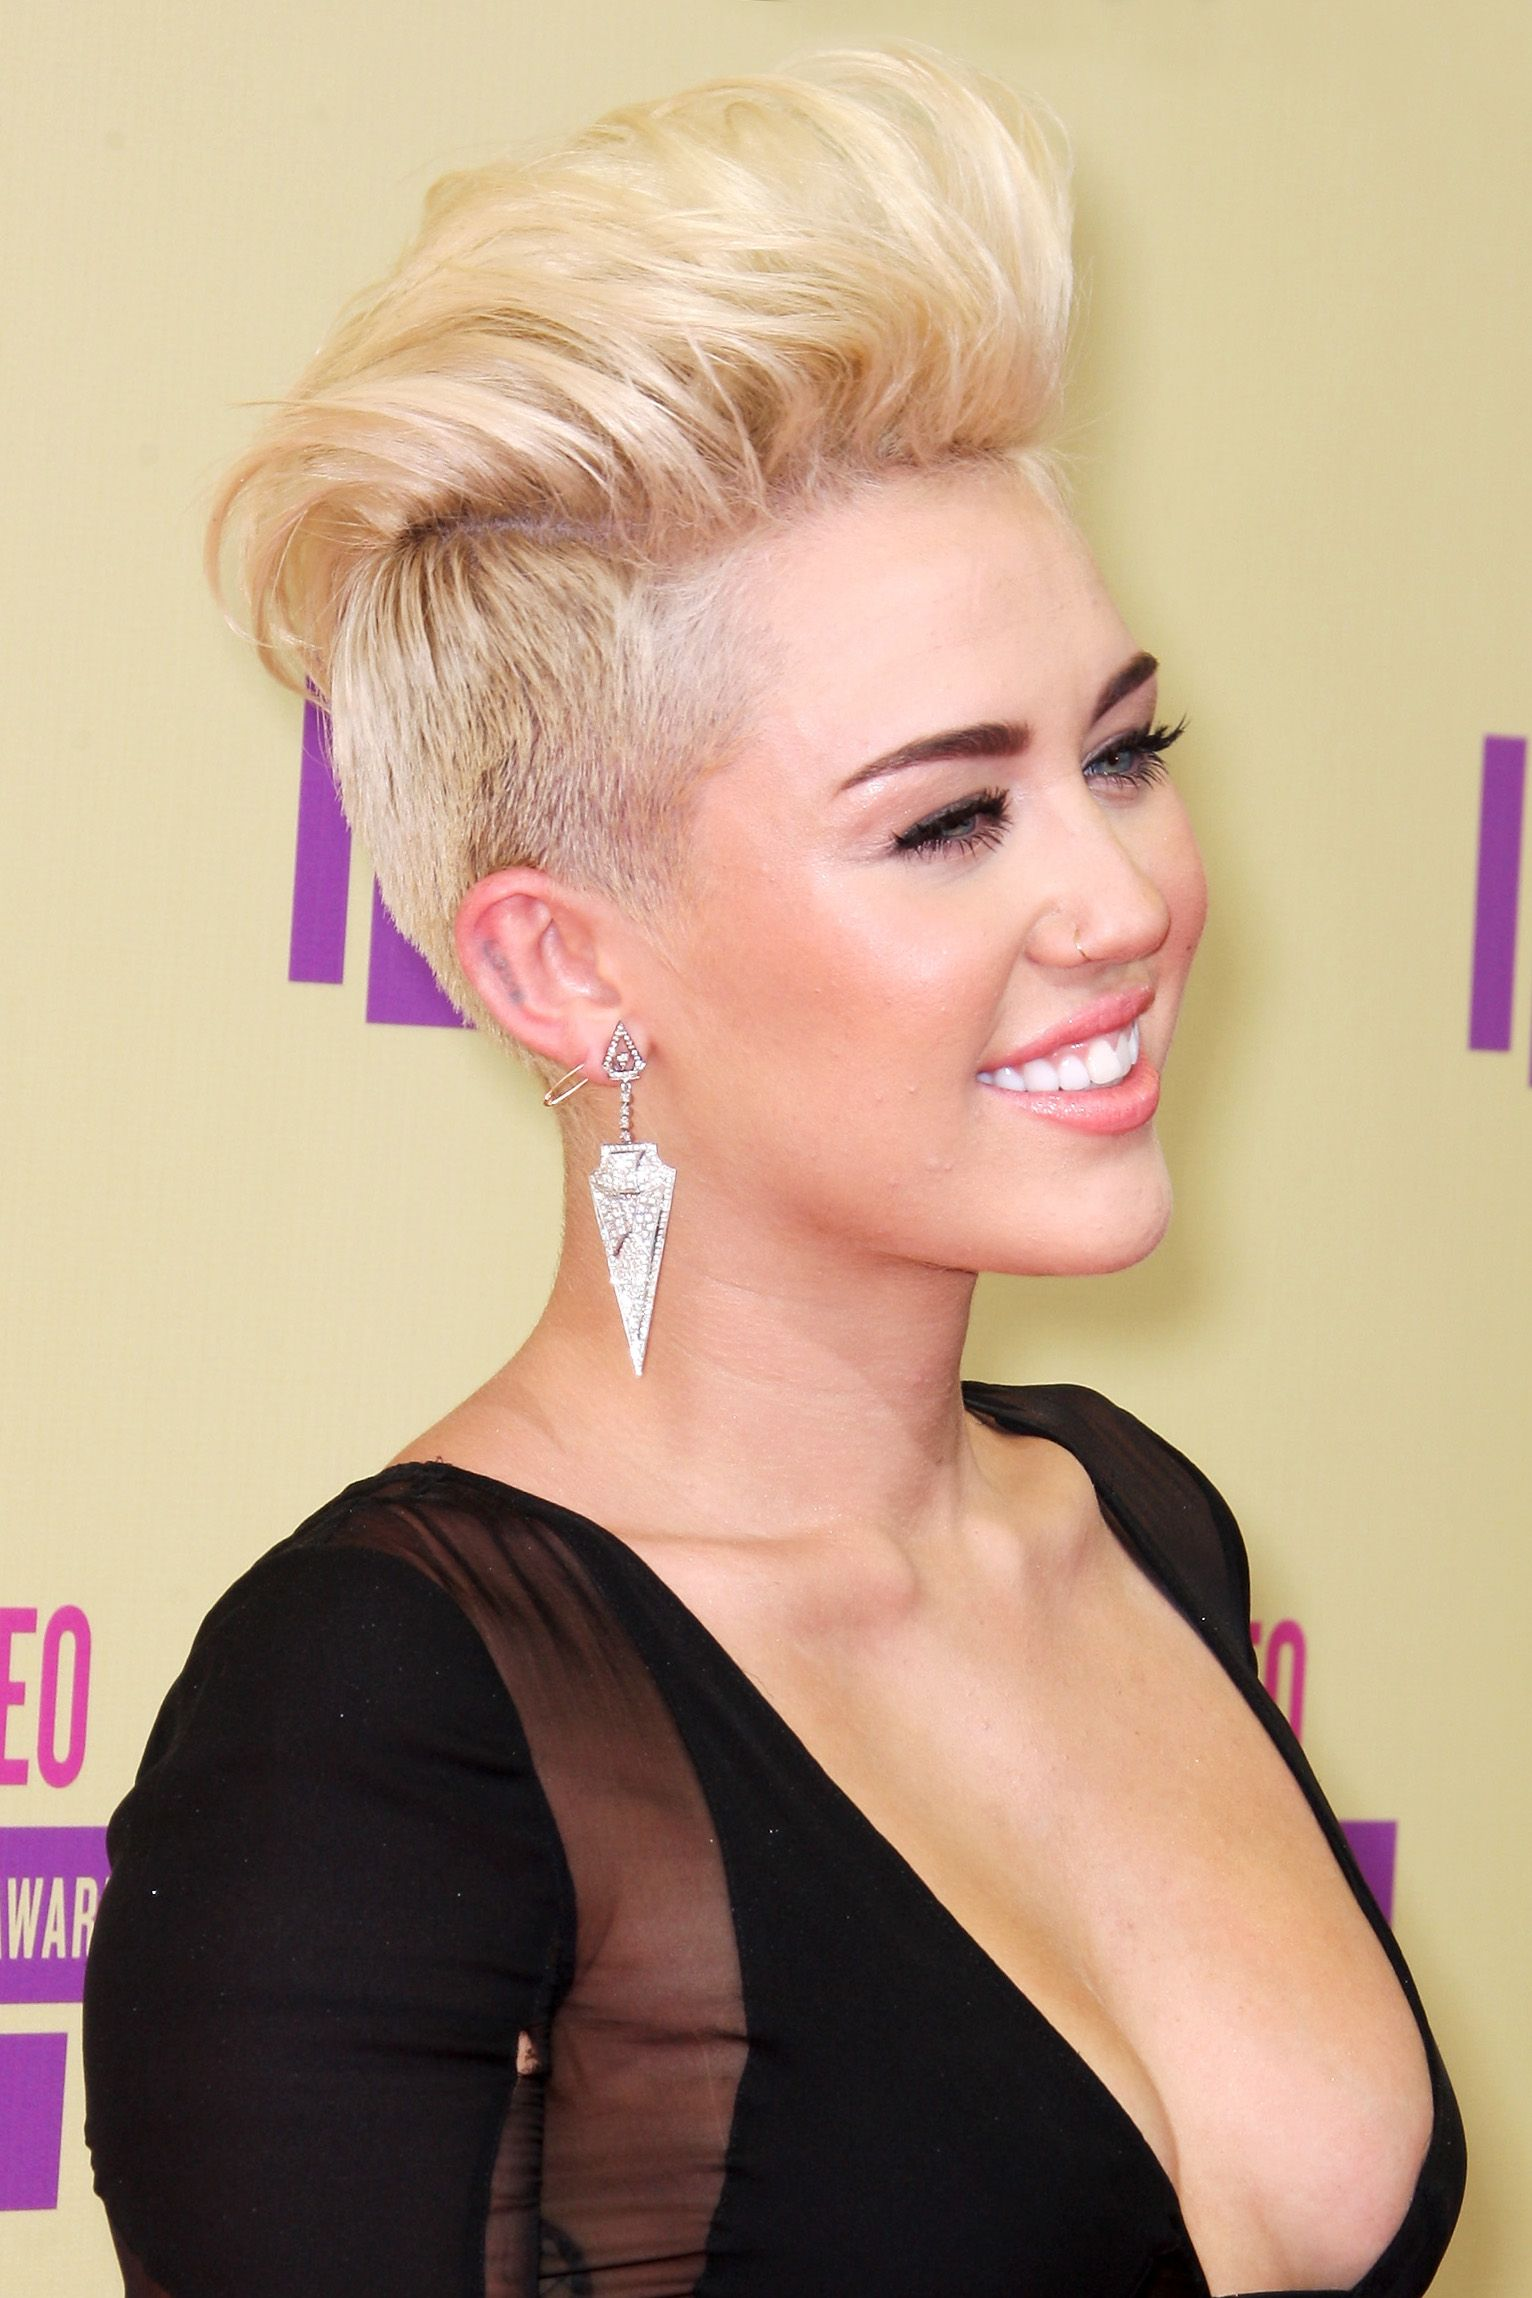 66 Miley Cyrus Hair Cuts And Colors